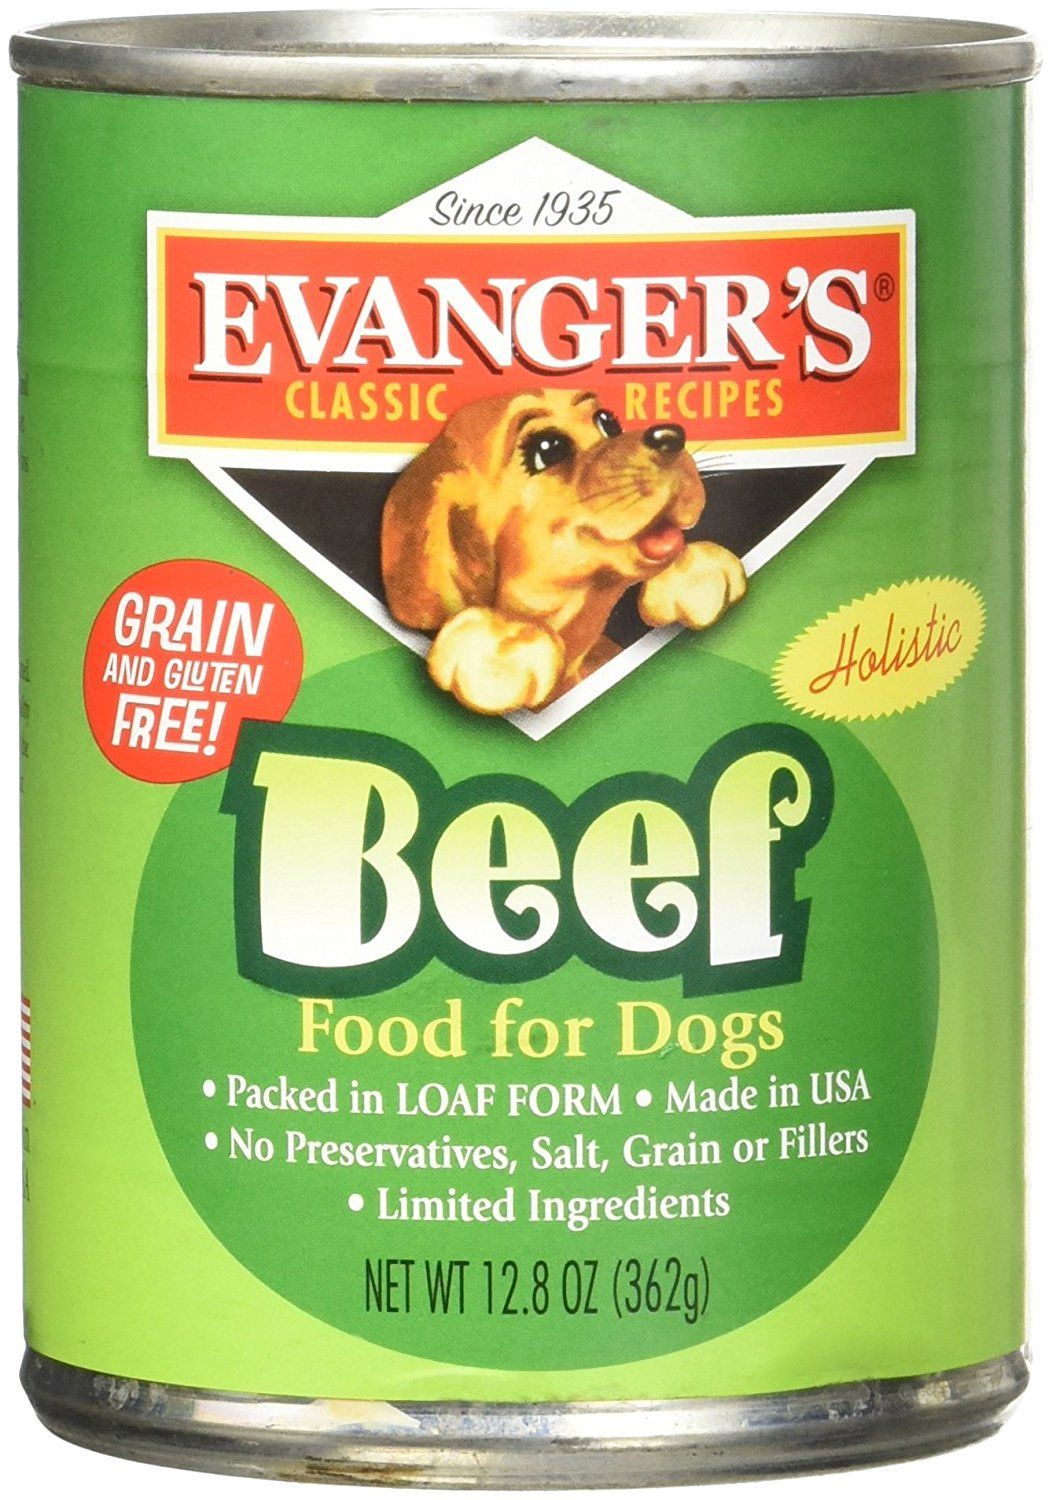 Evangers all natural classic beef canned dog food 128